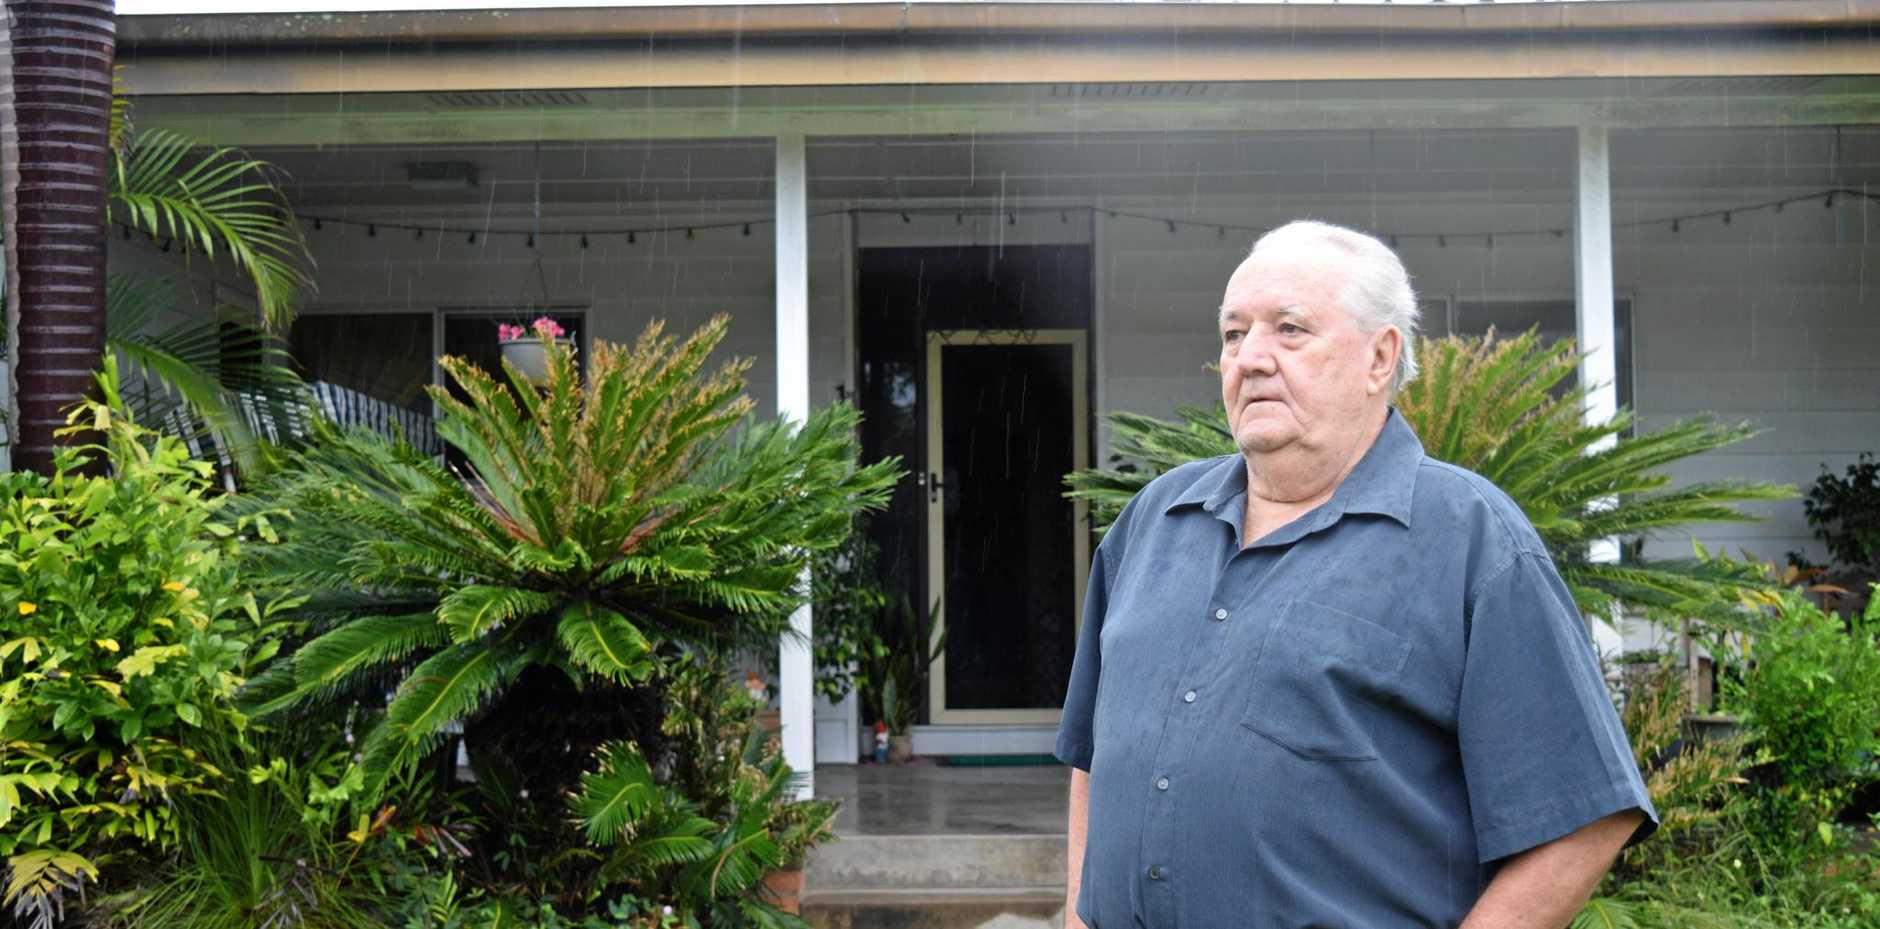 Bob May's East Mackay home has been classified as being in a flood inundation zone but in the past 40 years it has never been flooded.